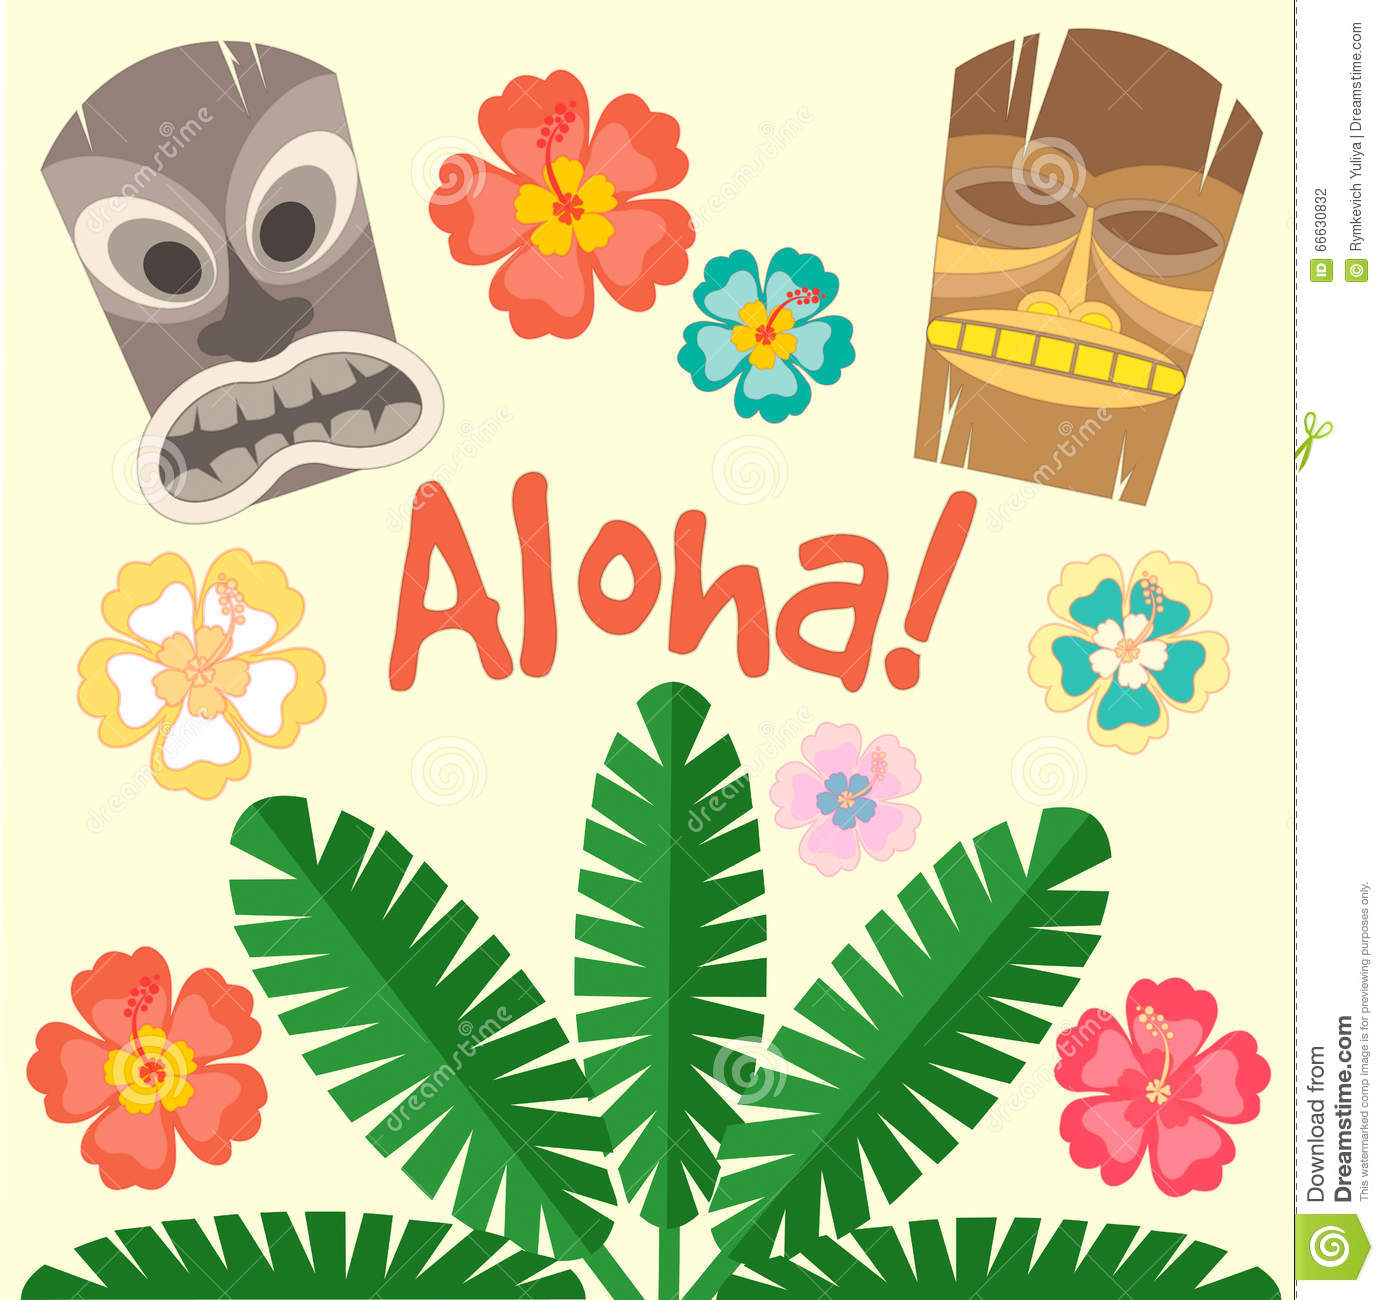 hawaii aloha poster stock vector illustration of drink 66630832 hibiscus flower clip art with letters hibiscus flower clipart